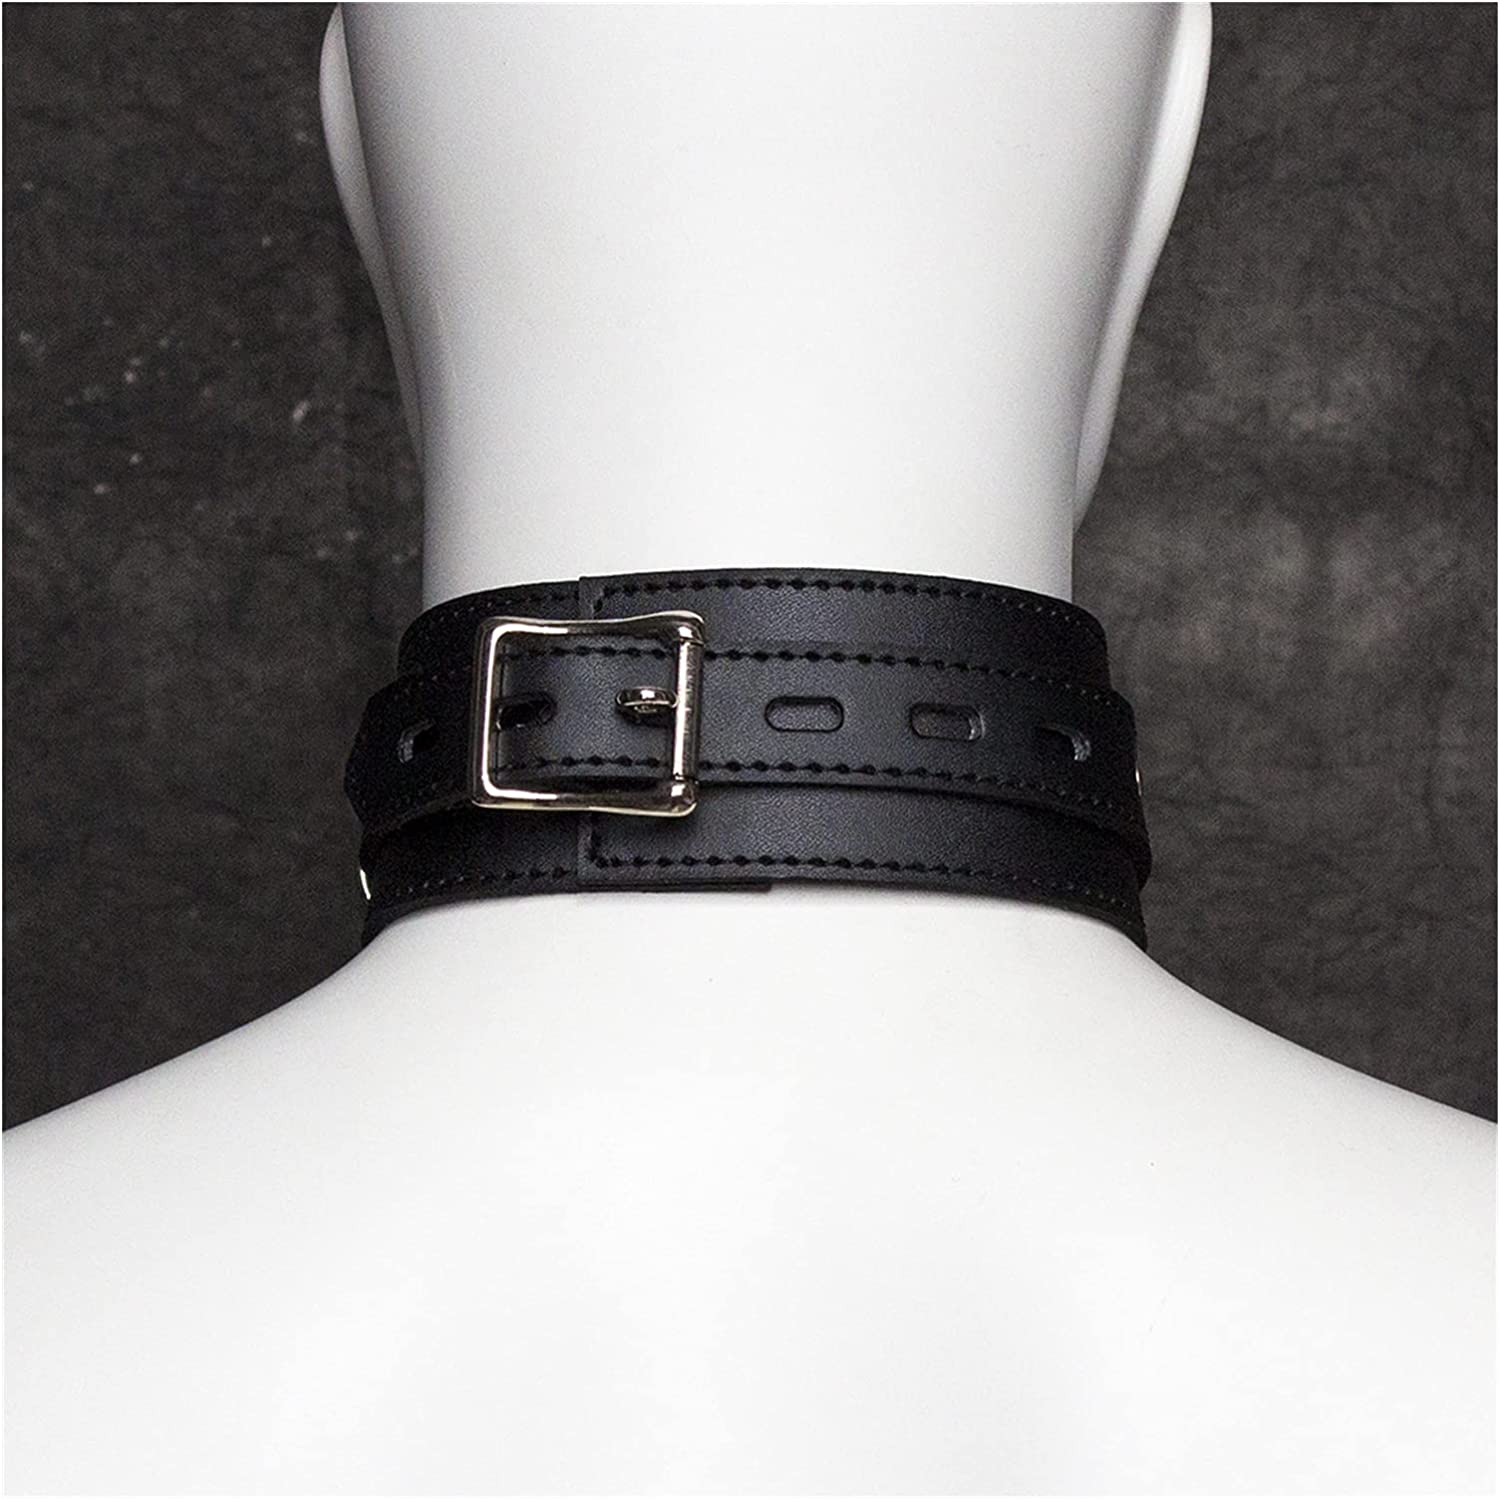 xo-kq Gothic Necklace Punk Collar Chain PU Leather Clavicle Collar Leash Toys Choker Rock Belt Fashion Jewelry Gifts for Adults Cosplay Women Couples (Color : A0182, Size : B01)